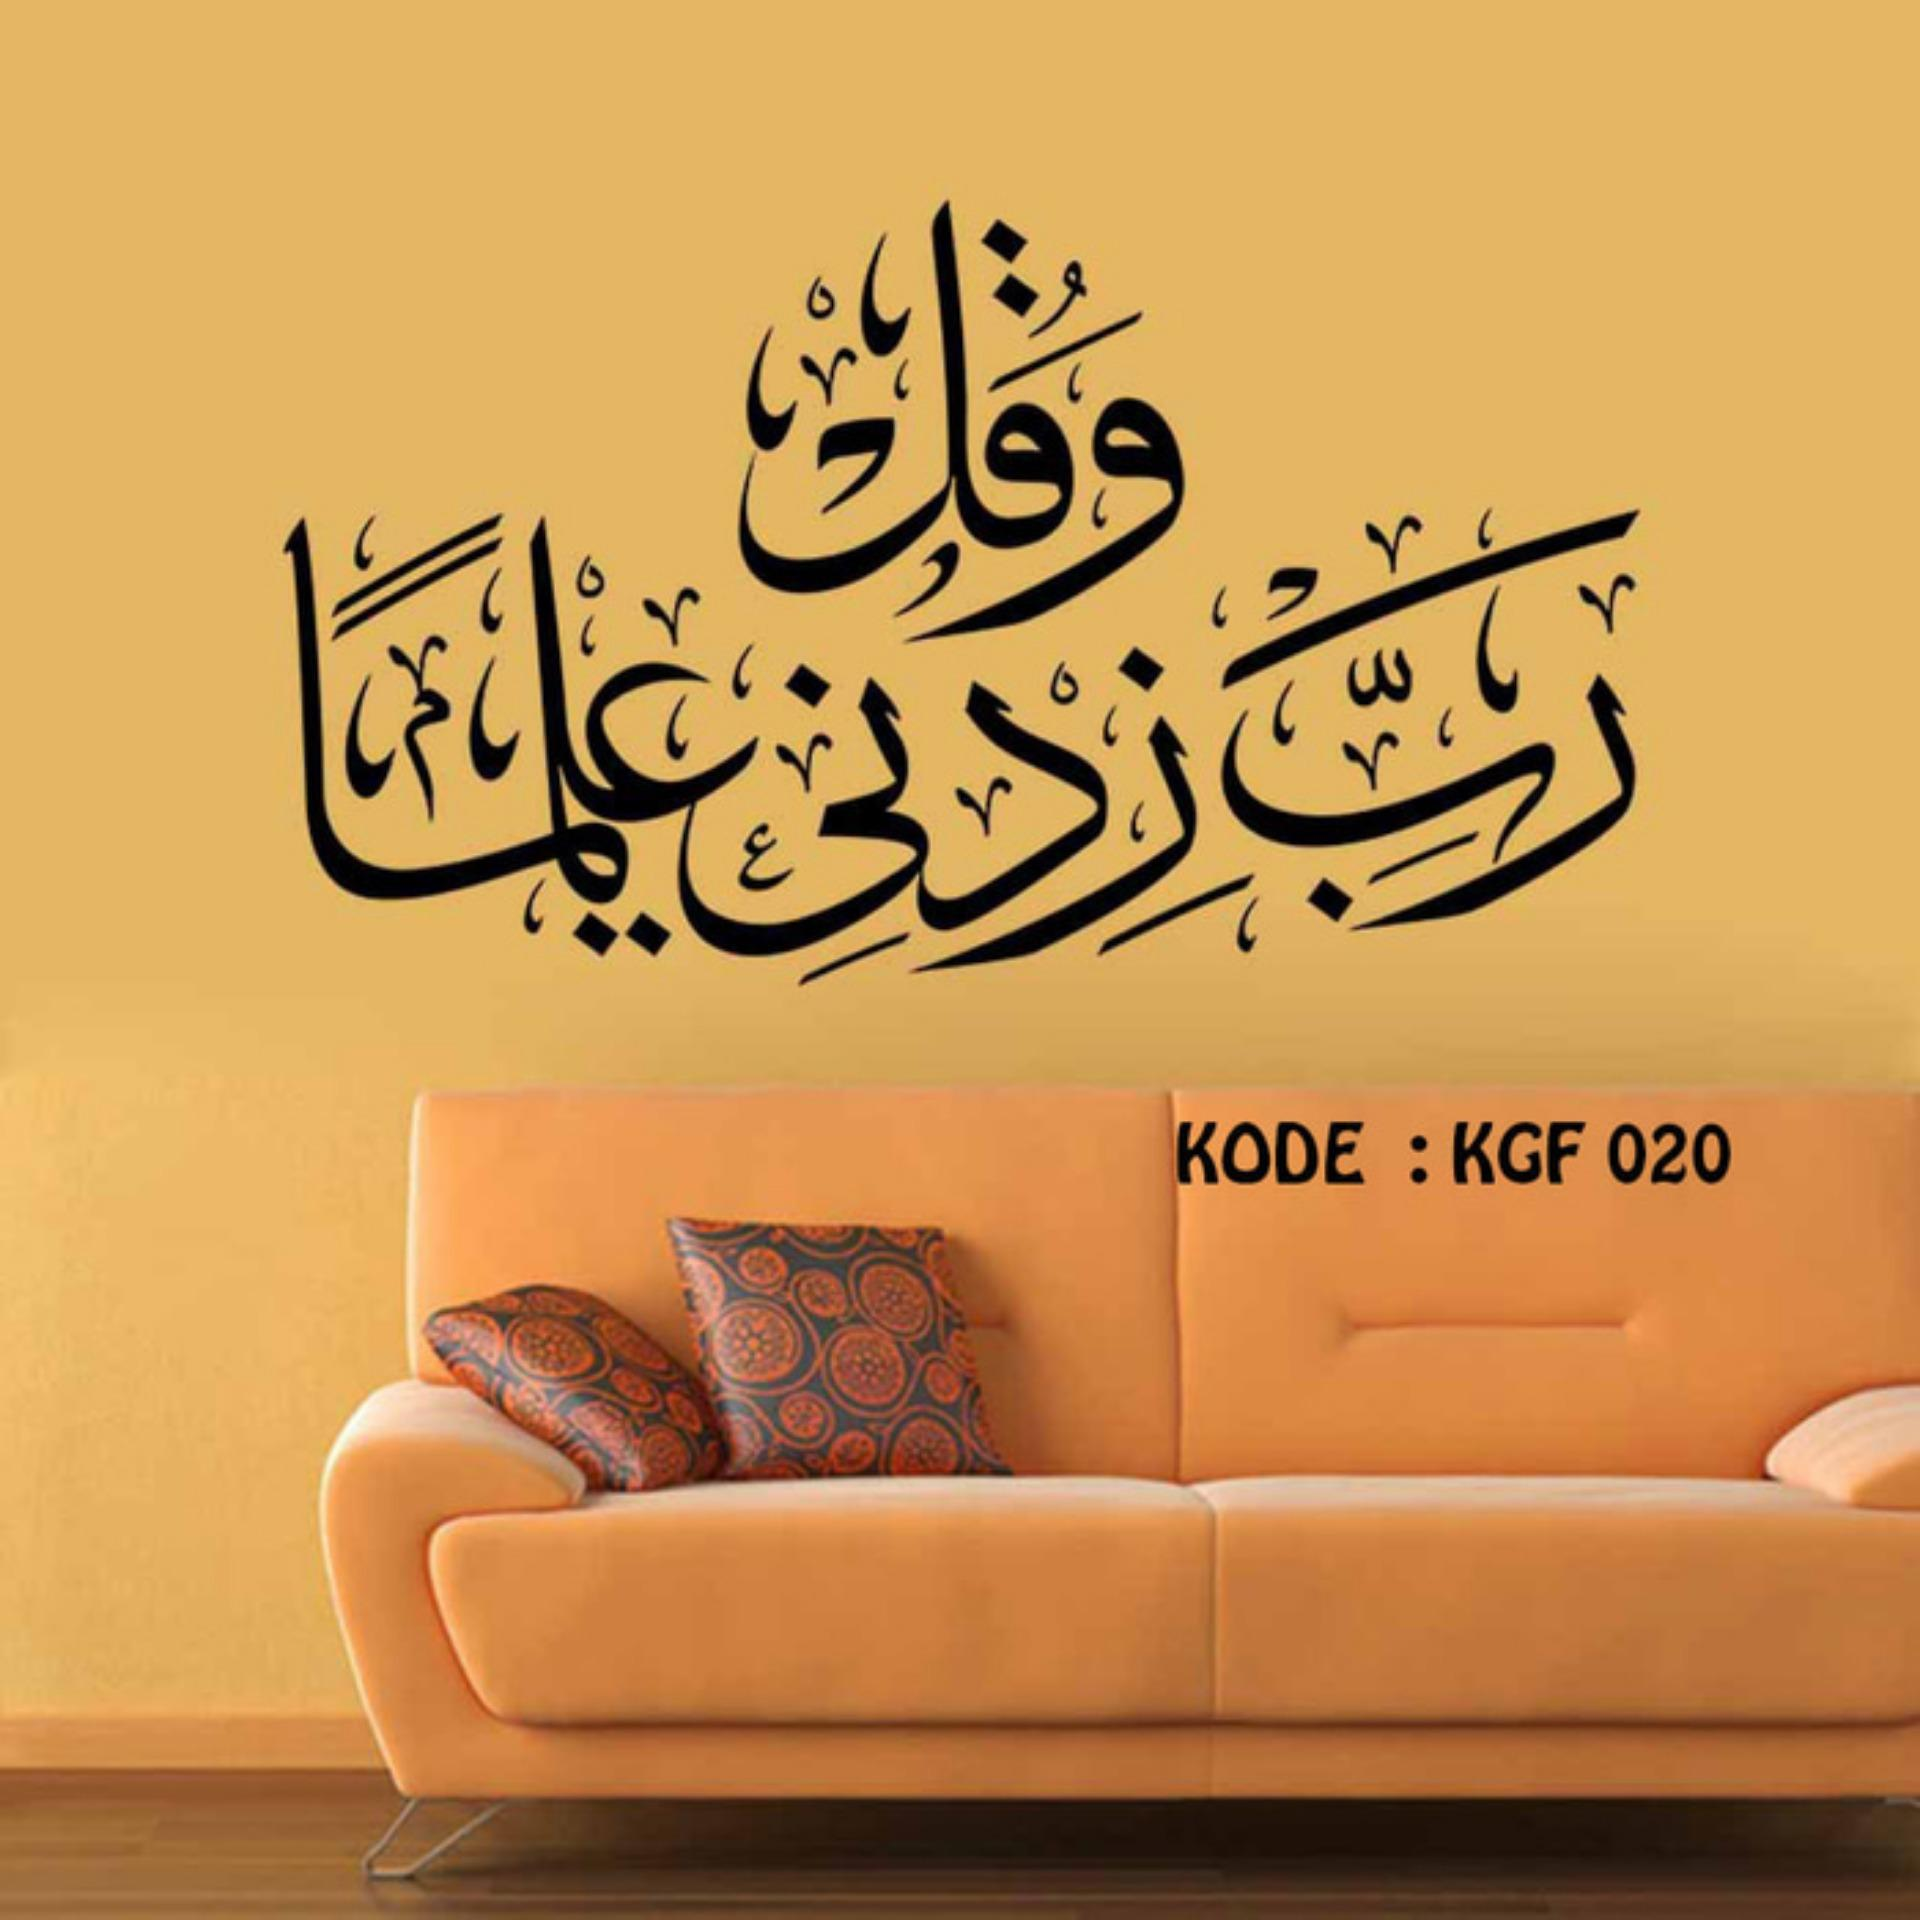 Home Decor Wallsticker Stiker Dinding Kaligrafi Hitam Original